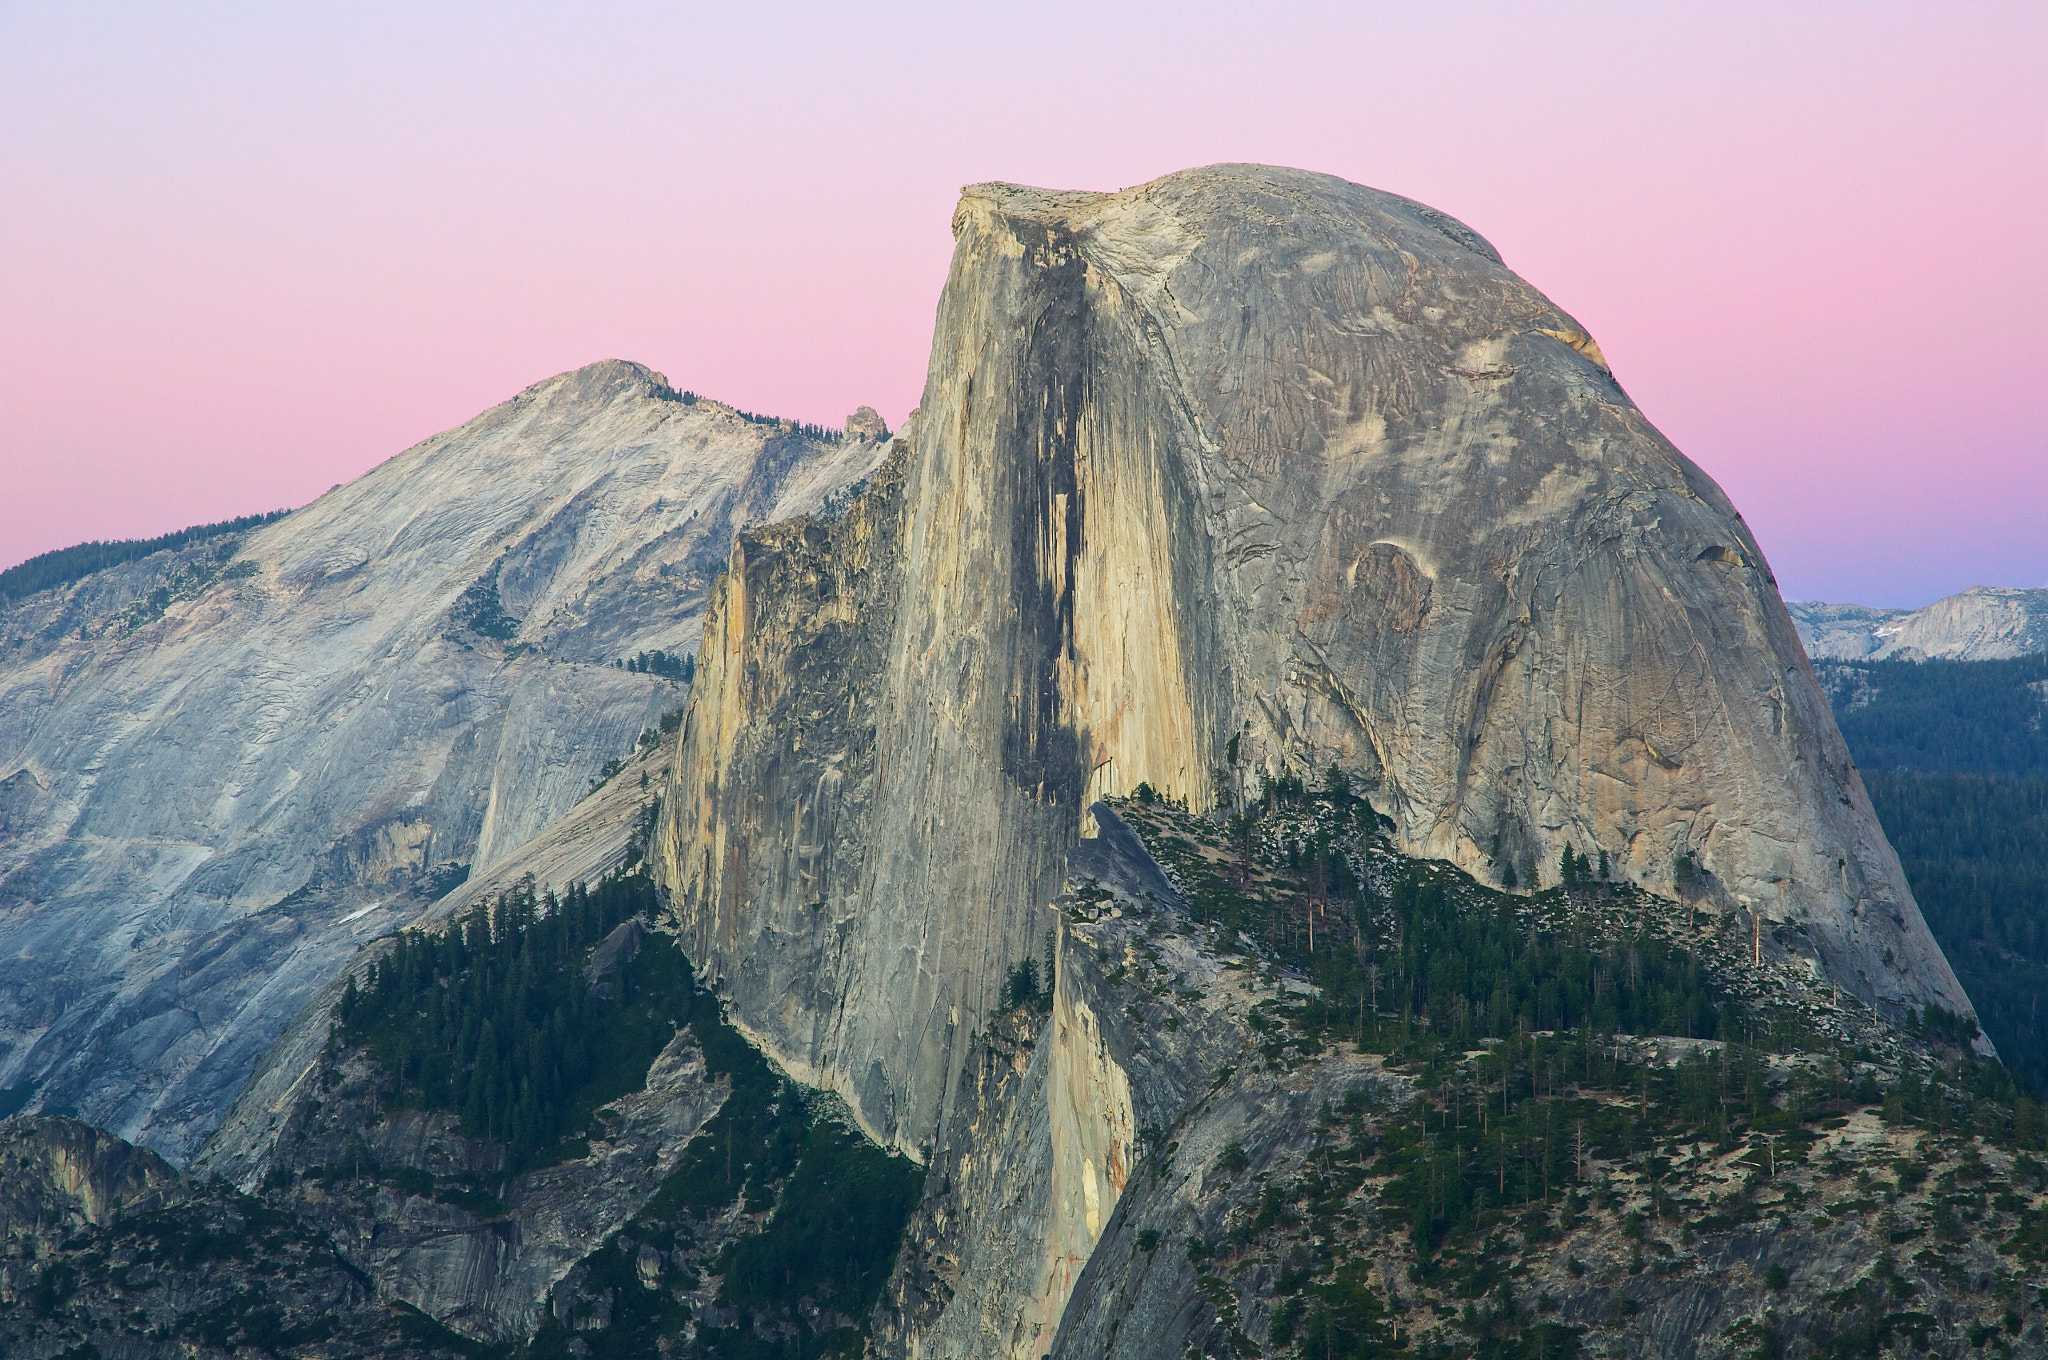 Photograph Half Dome with Purple Skies by John Baggaley on 500px